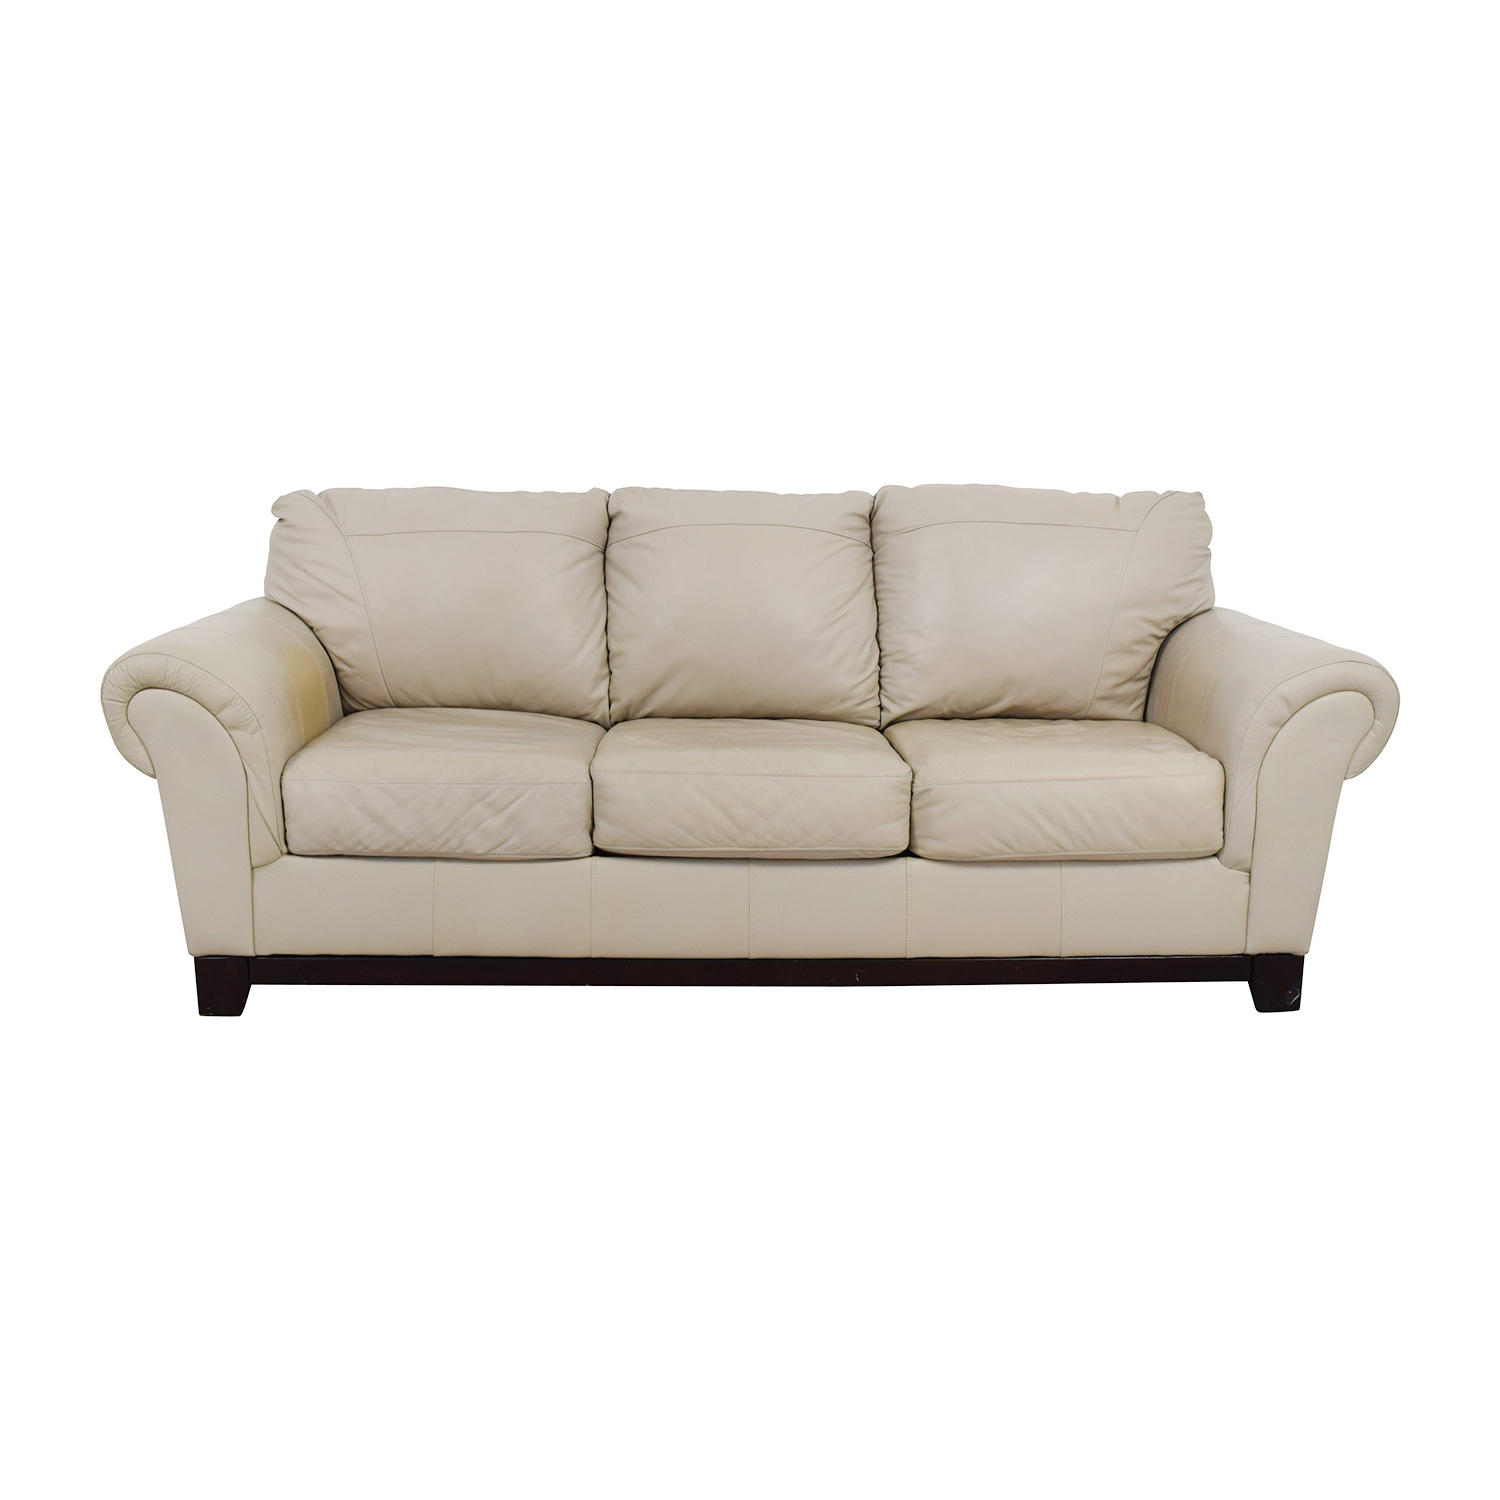 Sofa Taupe Taupe Sofas Casa Camino Modern Taupe Leather Sectional